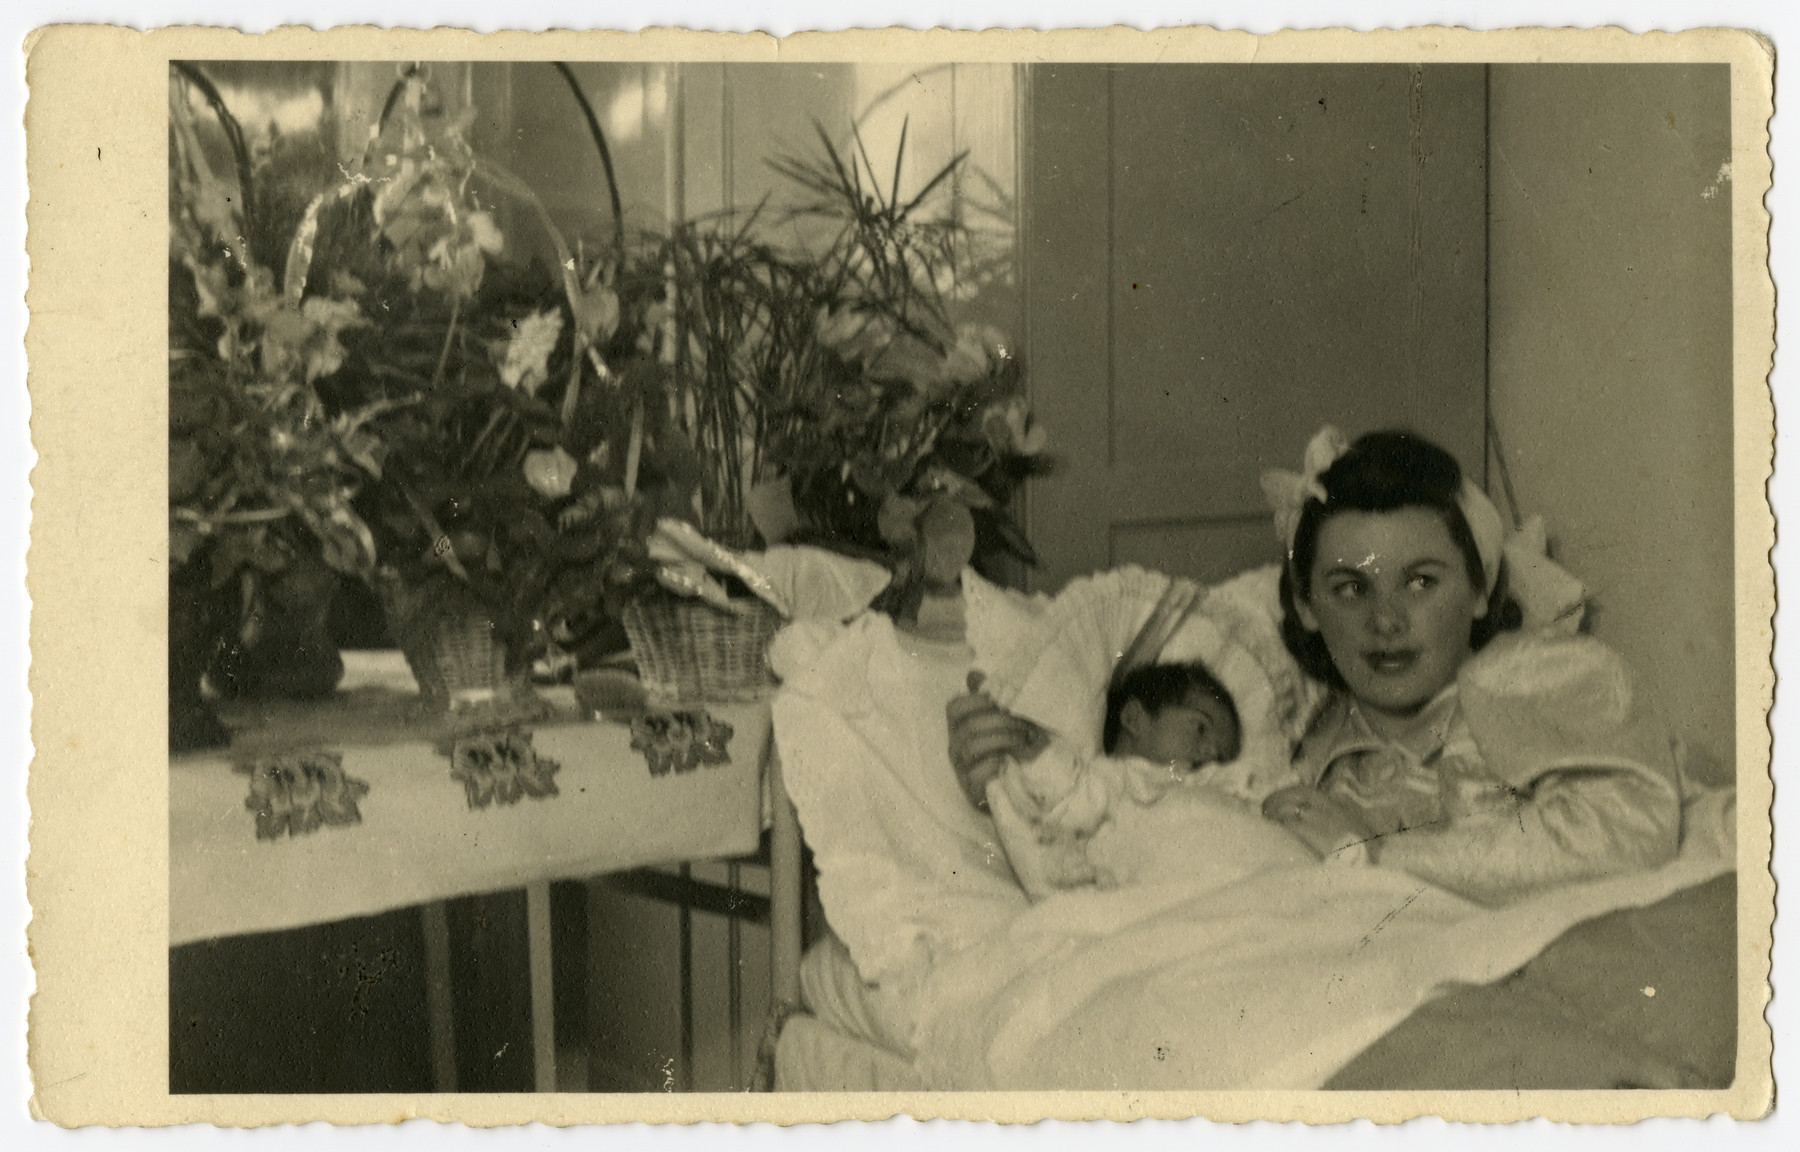 Mother with a newborn baby.  Her husband and child died in Auschwitz.  She survived and became a Catholic after the war.